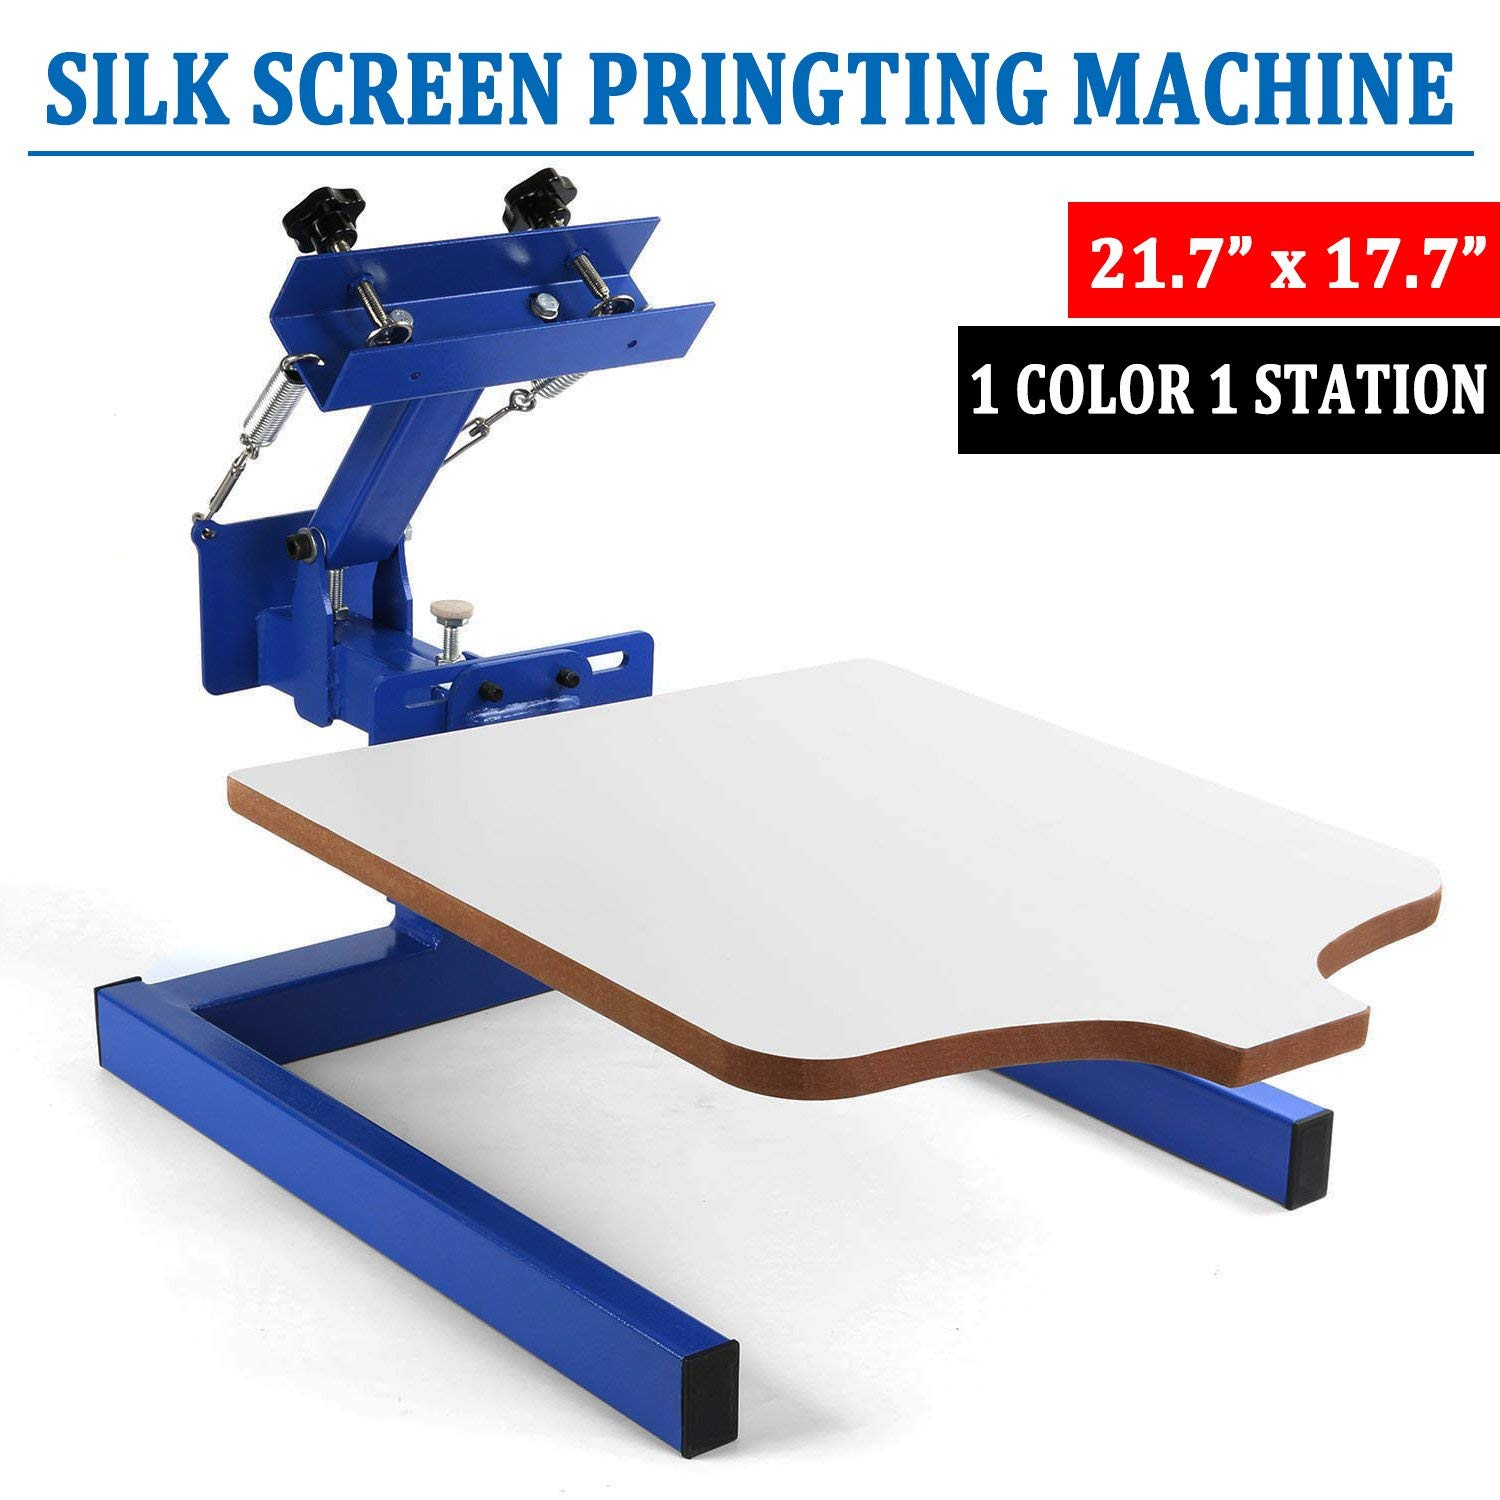 "SHZOND Screen Printing Press 1 Color 1 Station Silk Screen Machine 21.7"" x 17.7"" Removable Pallet Screen Printing Machine Press for T-Shirt DIY Printing (1 Color 1 Station)"